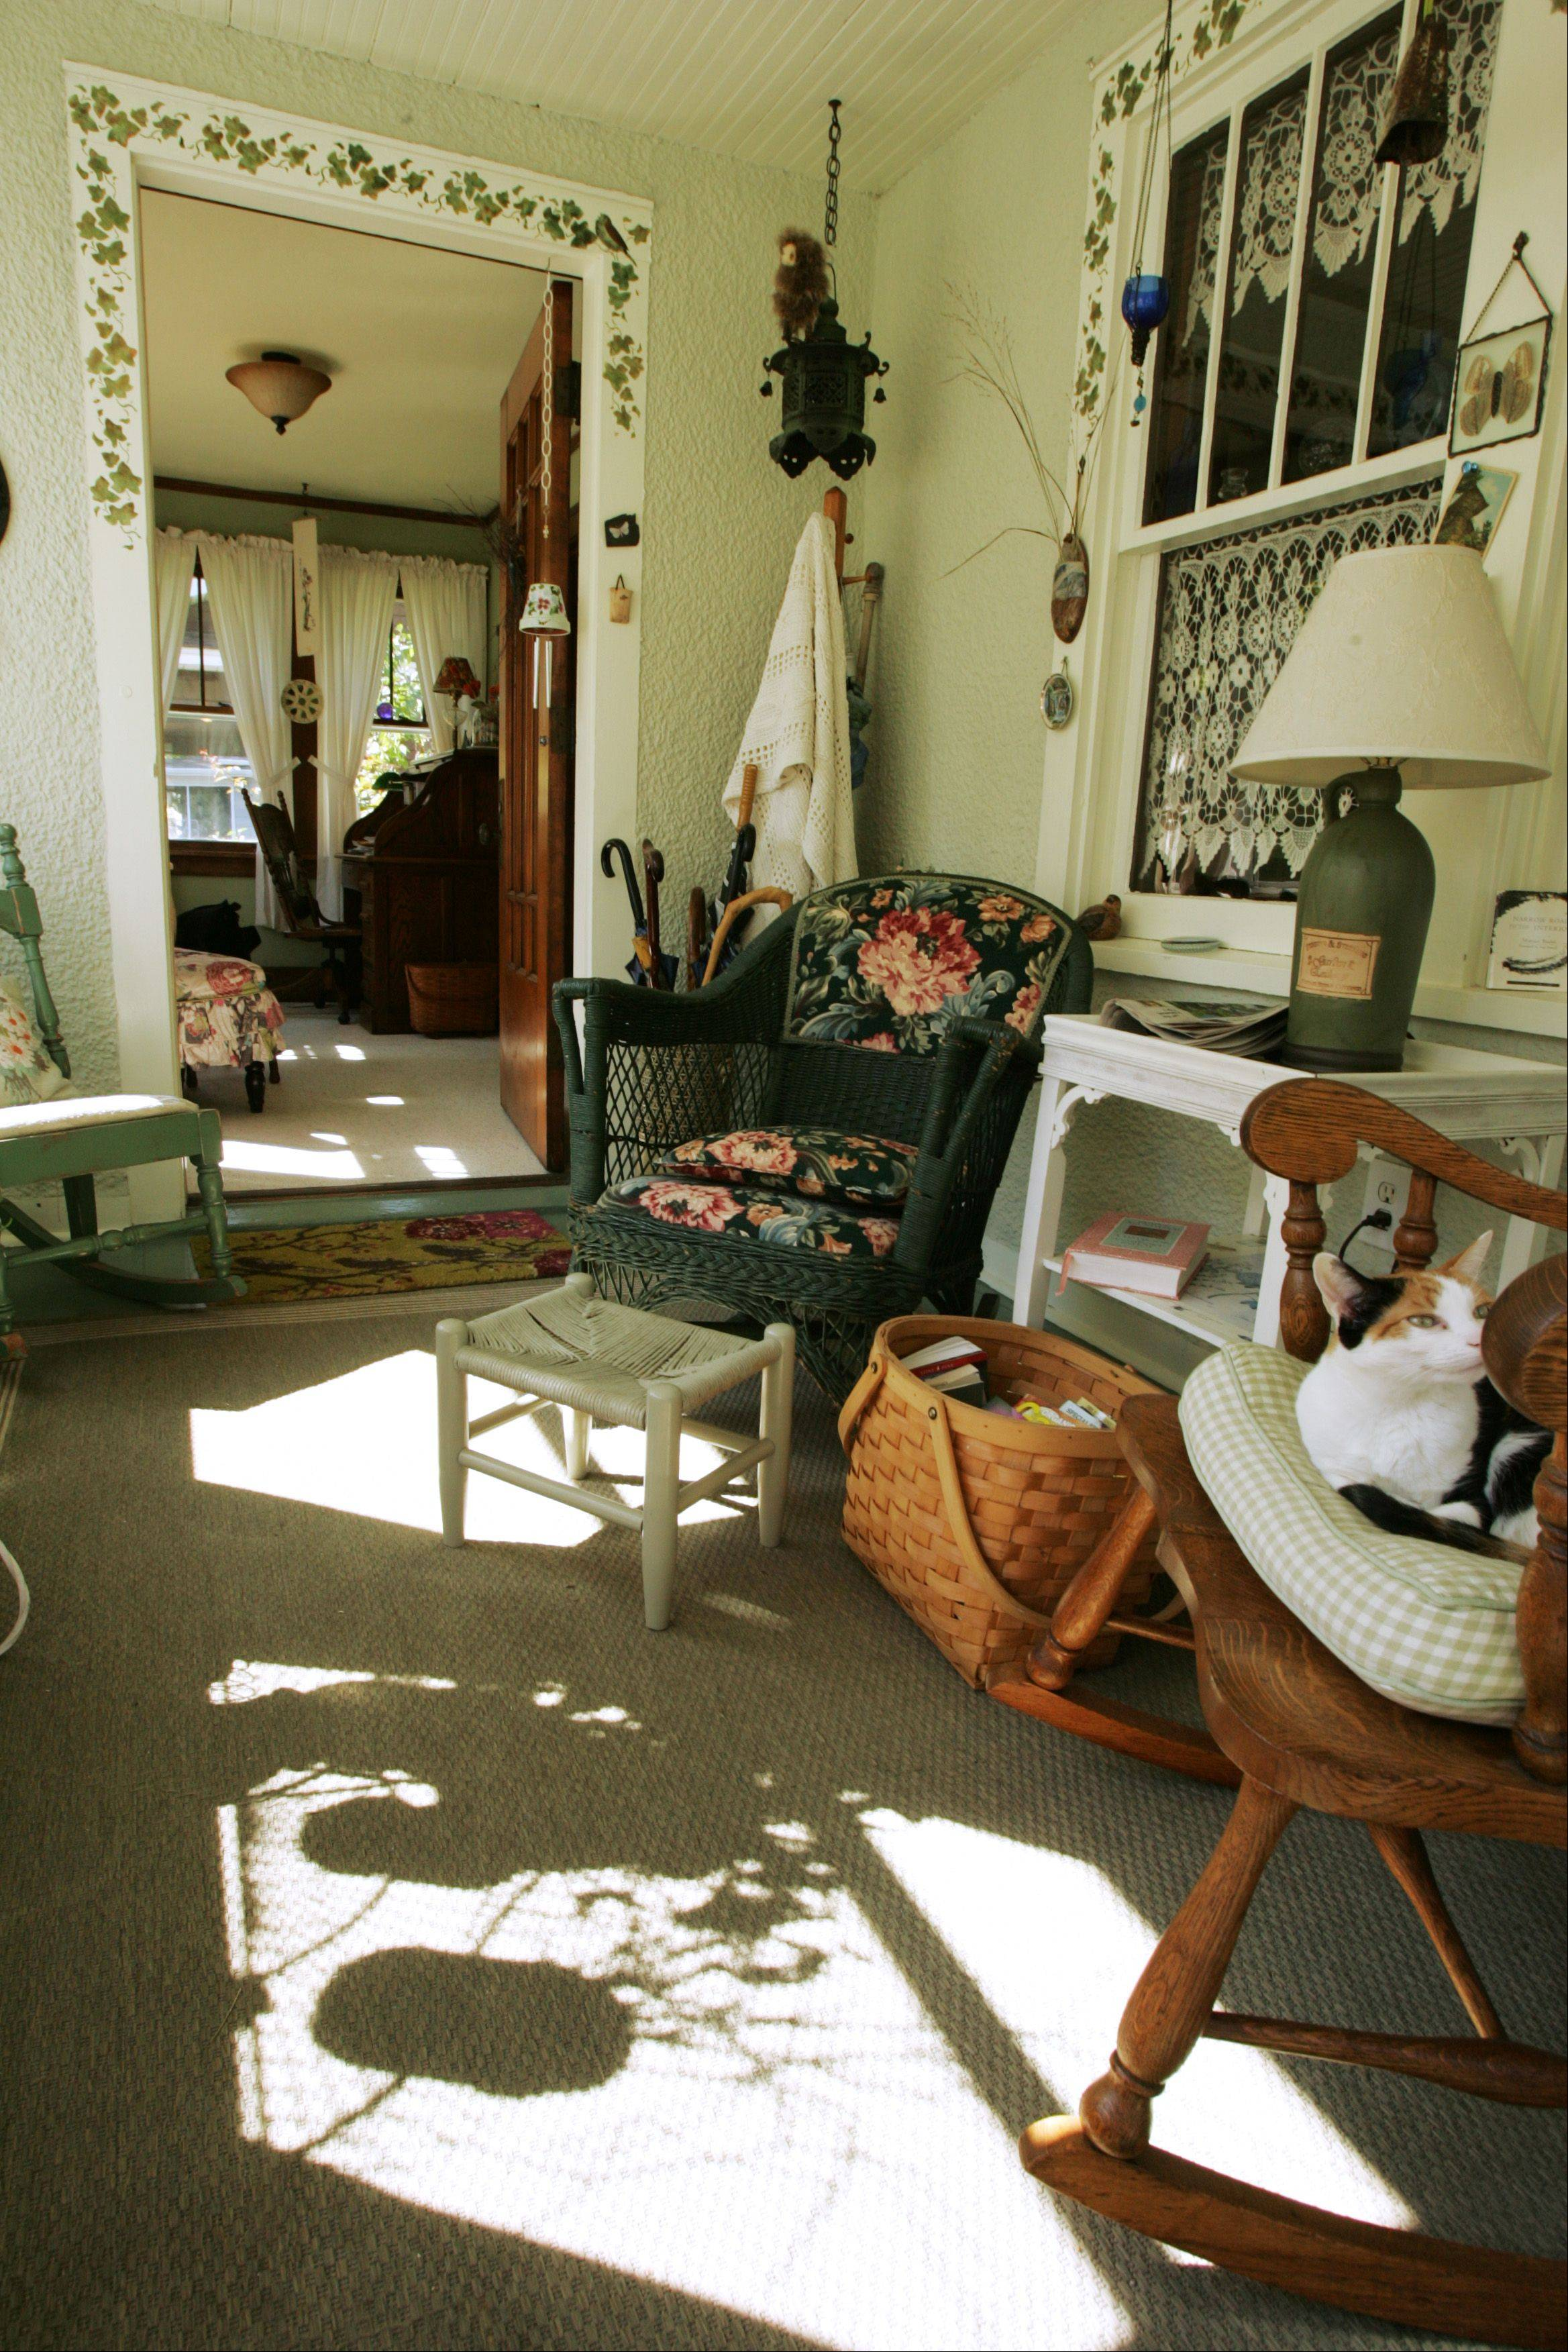 The entryway/sunroom at 356 Jewett St. in Elgin, part of the upcoming house tour.